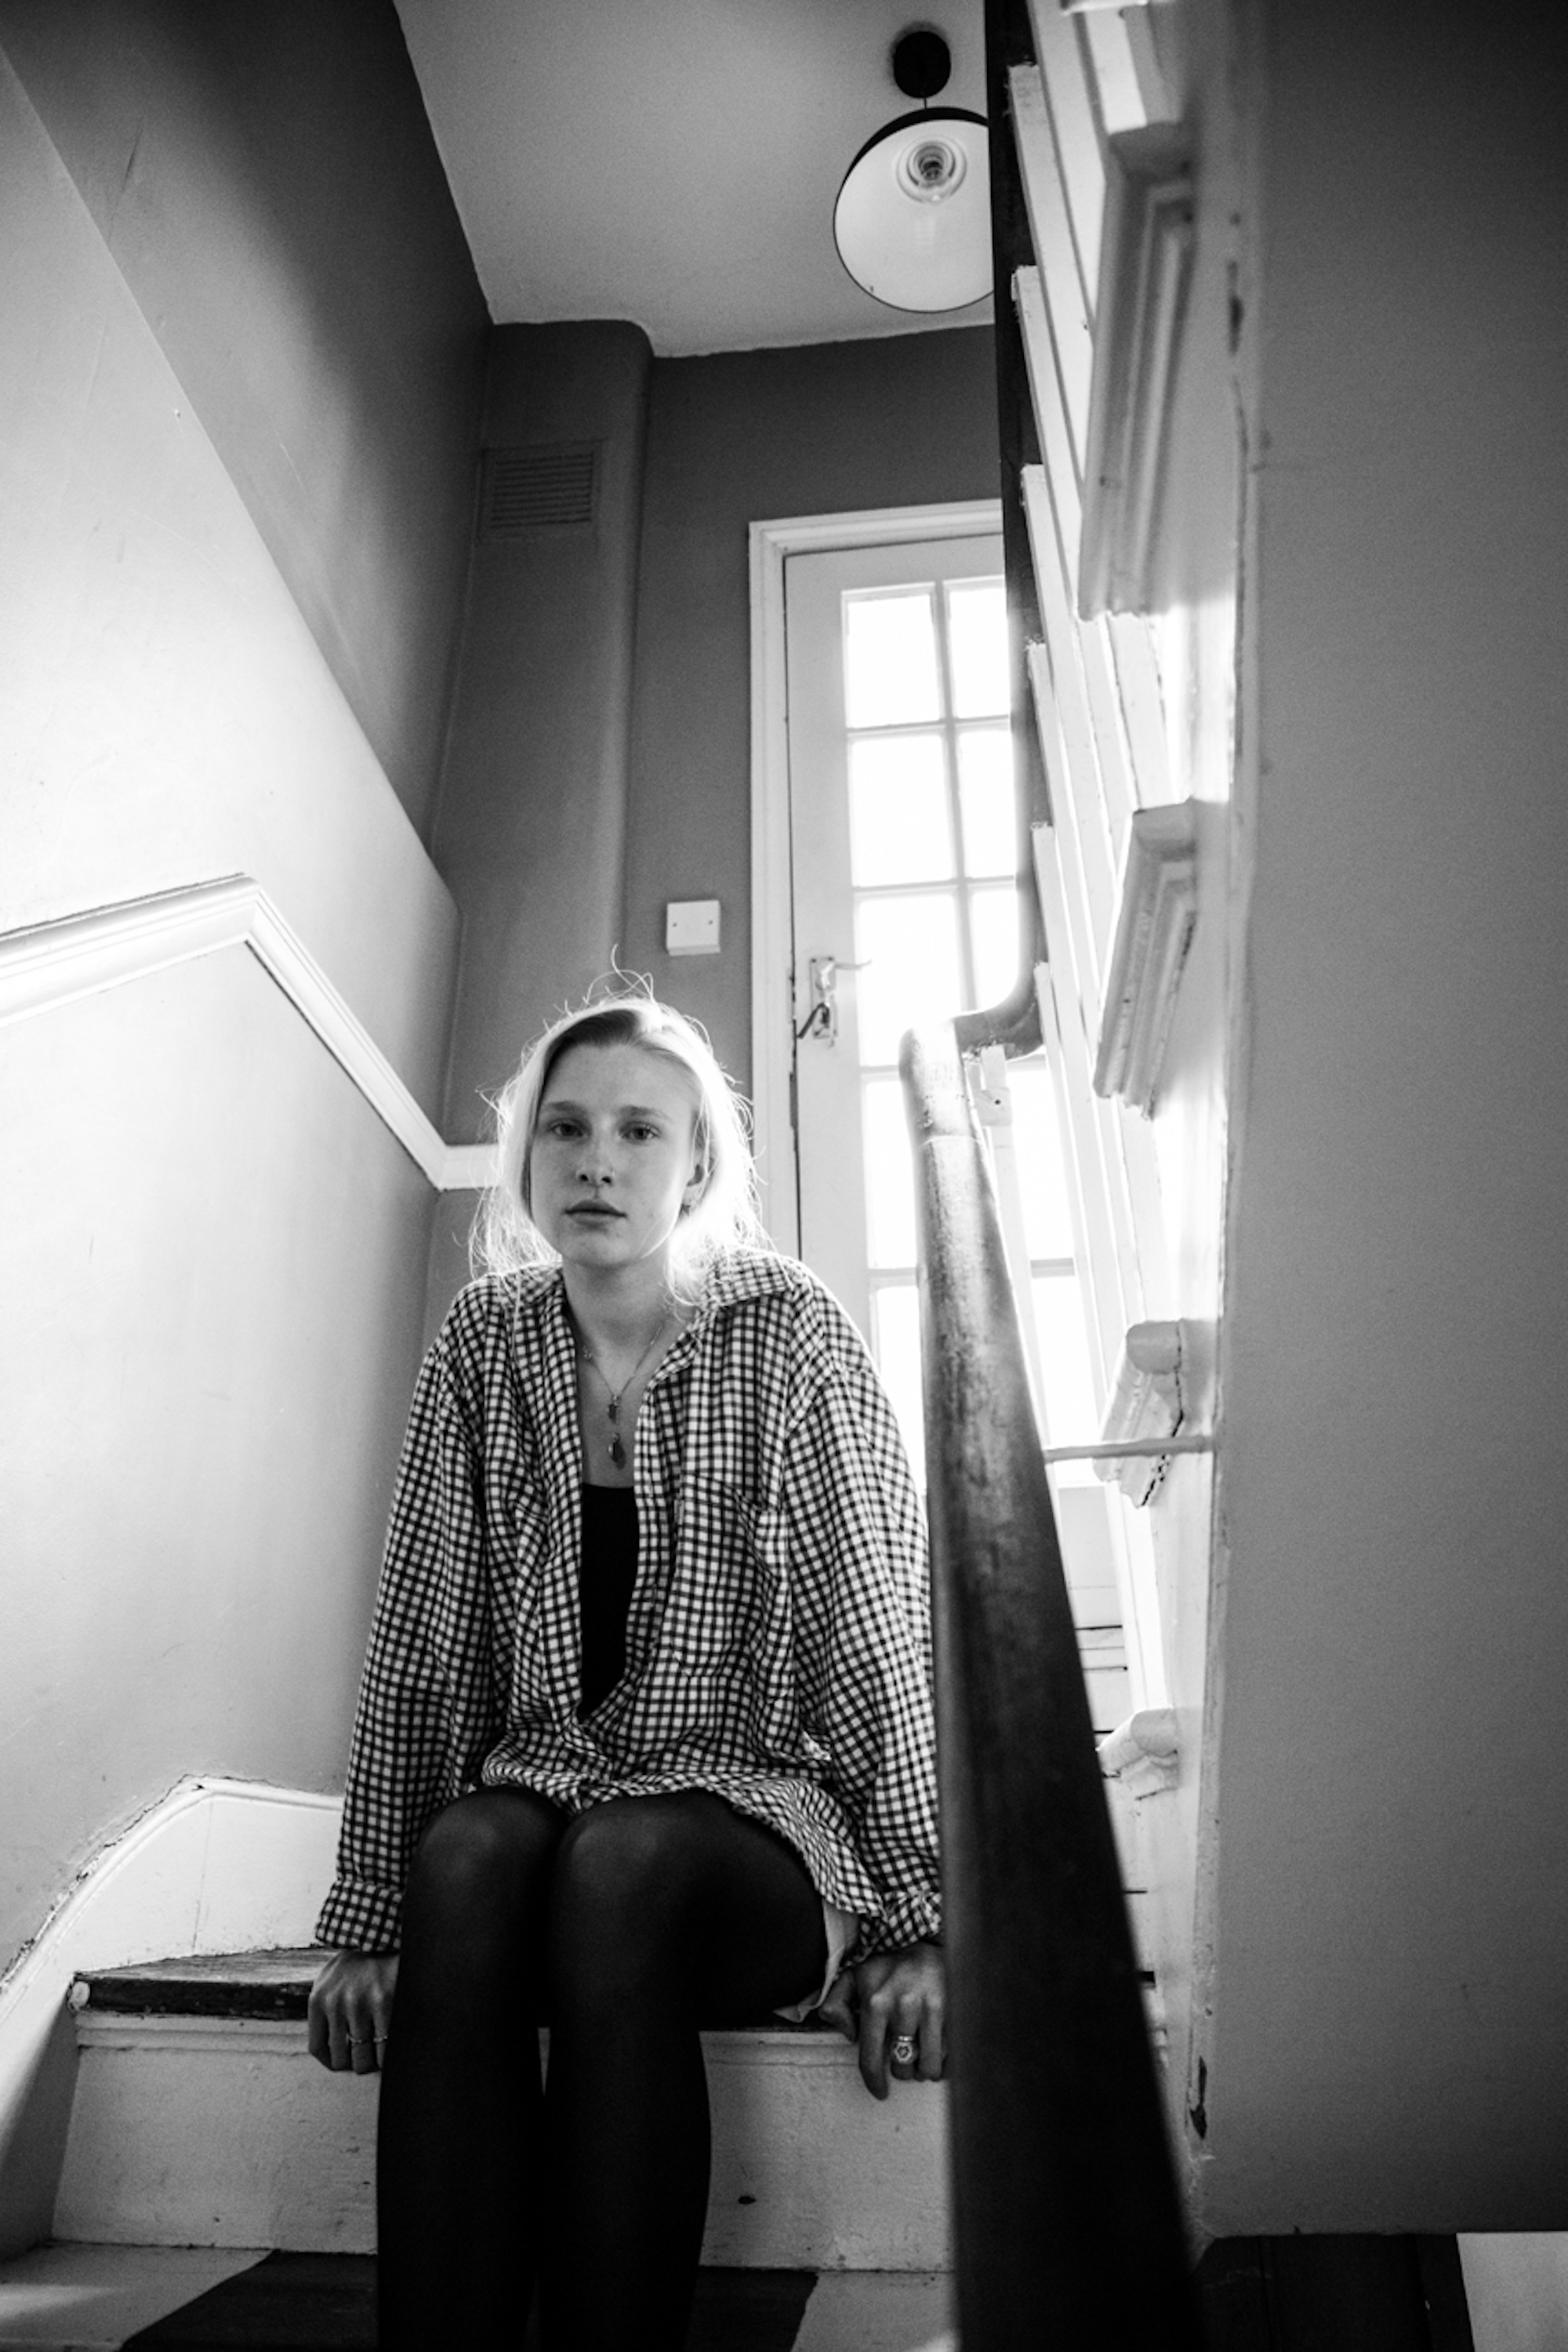 Billie Marten in London sitting on staircase black and white